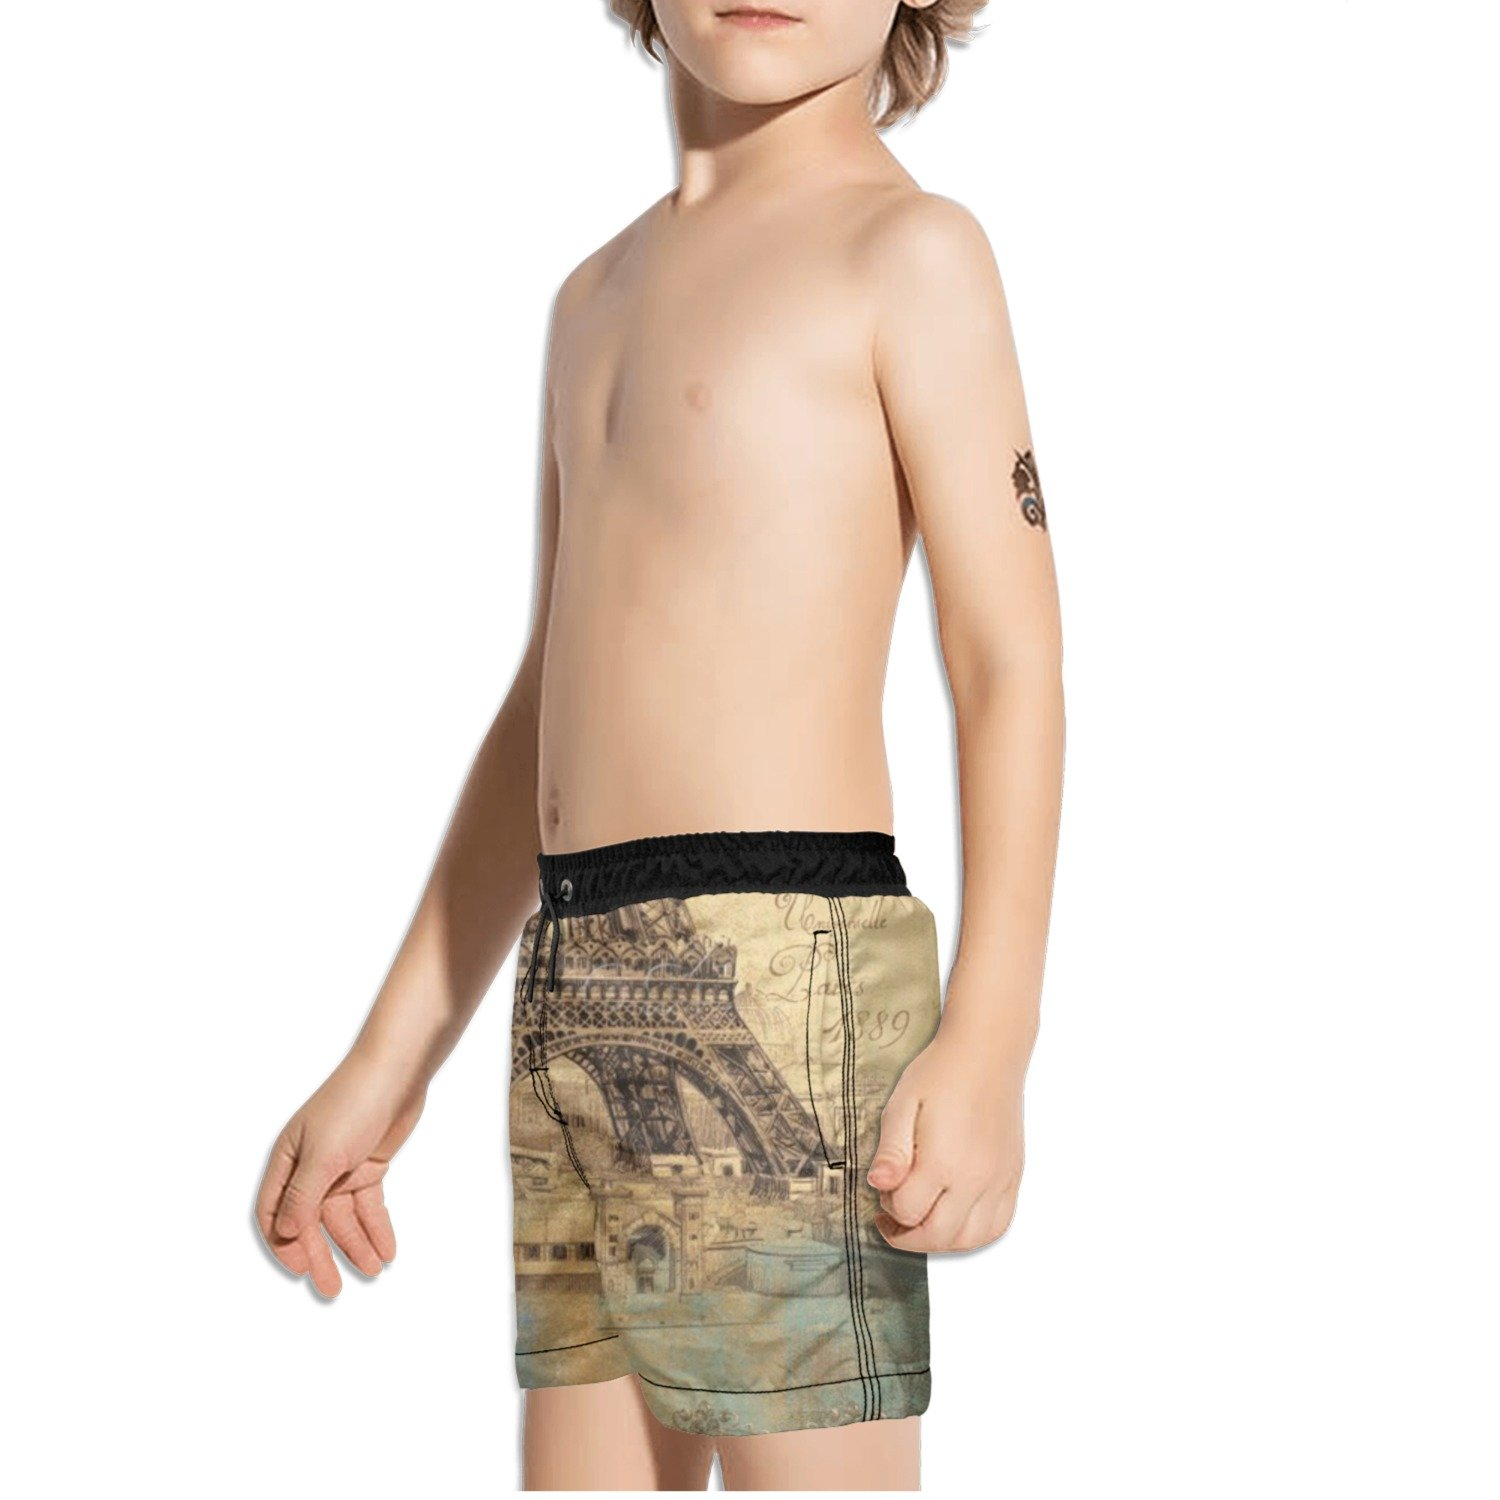 Ouxioaz Boys Swim Trunk Paris Vintage Eiffel Tower Beach Board Shorts